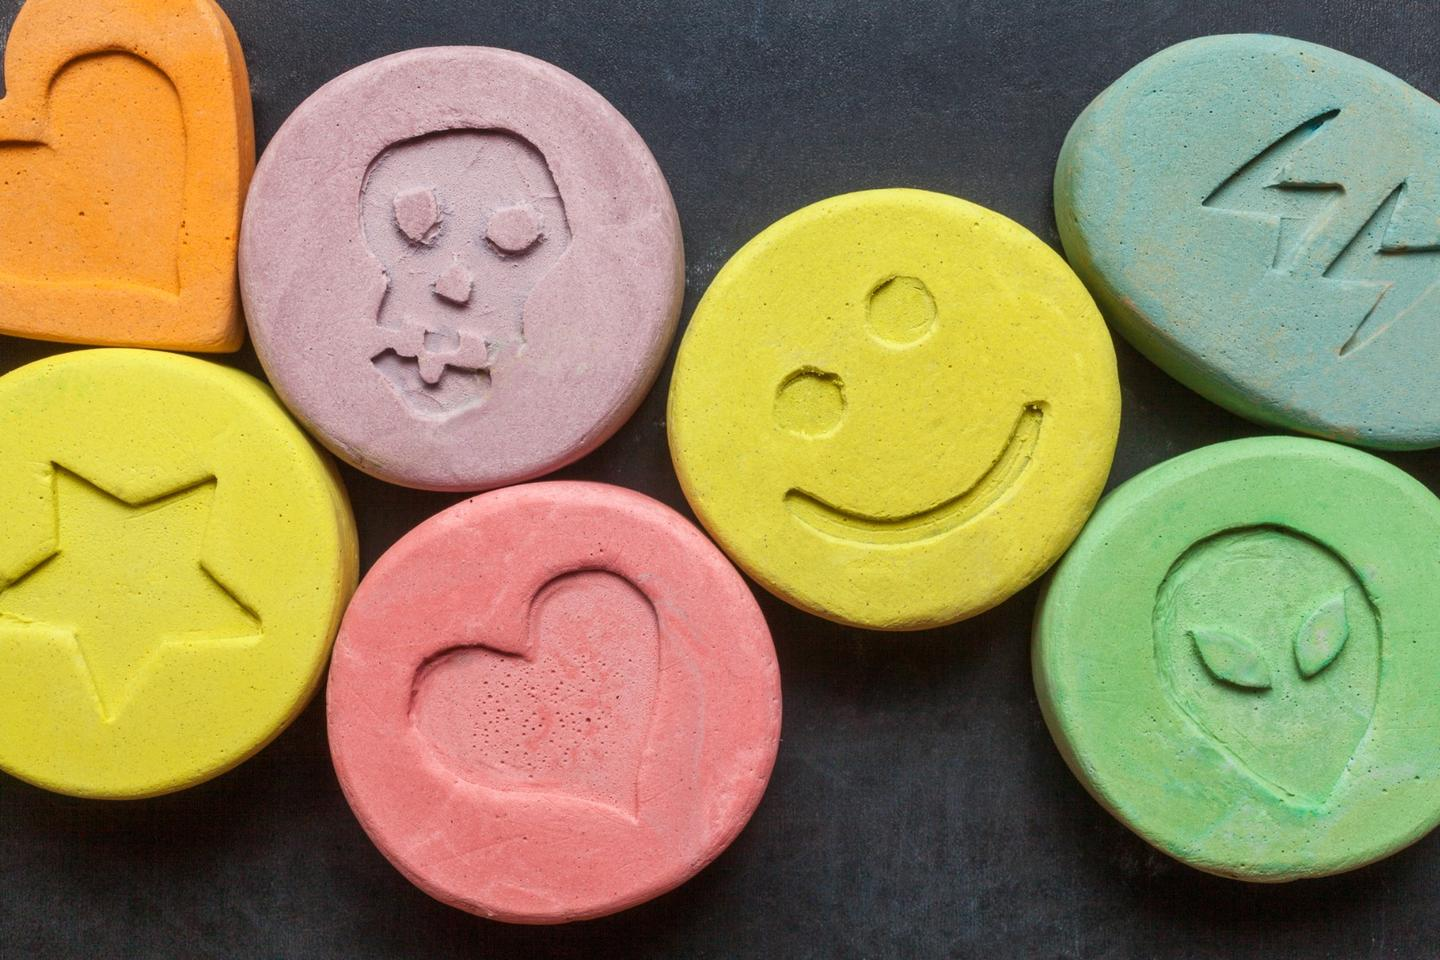 A new study adds to a body of evidence suggesting mild, long-term MDMA usage is not damaging to an individual's social function